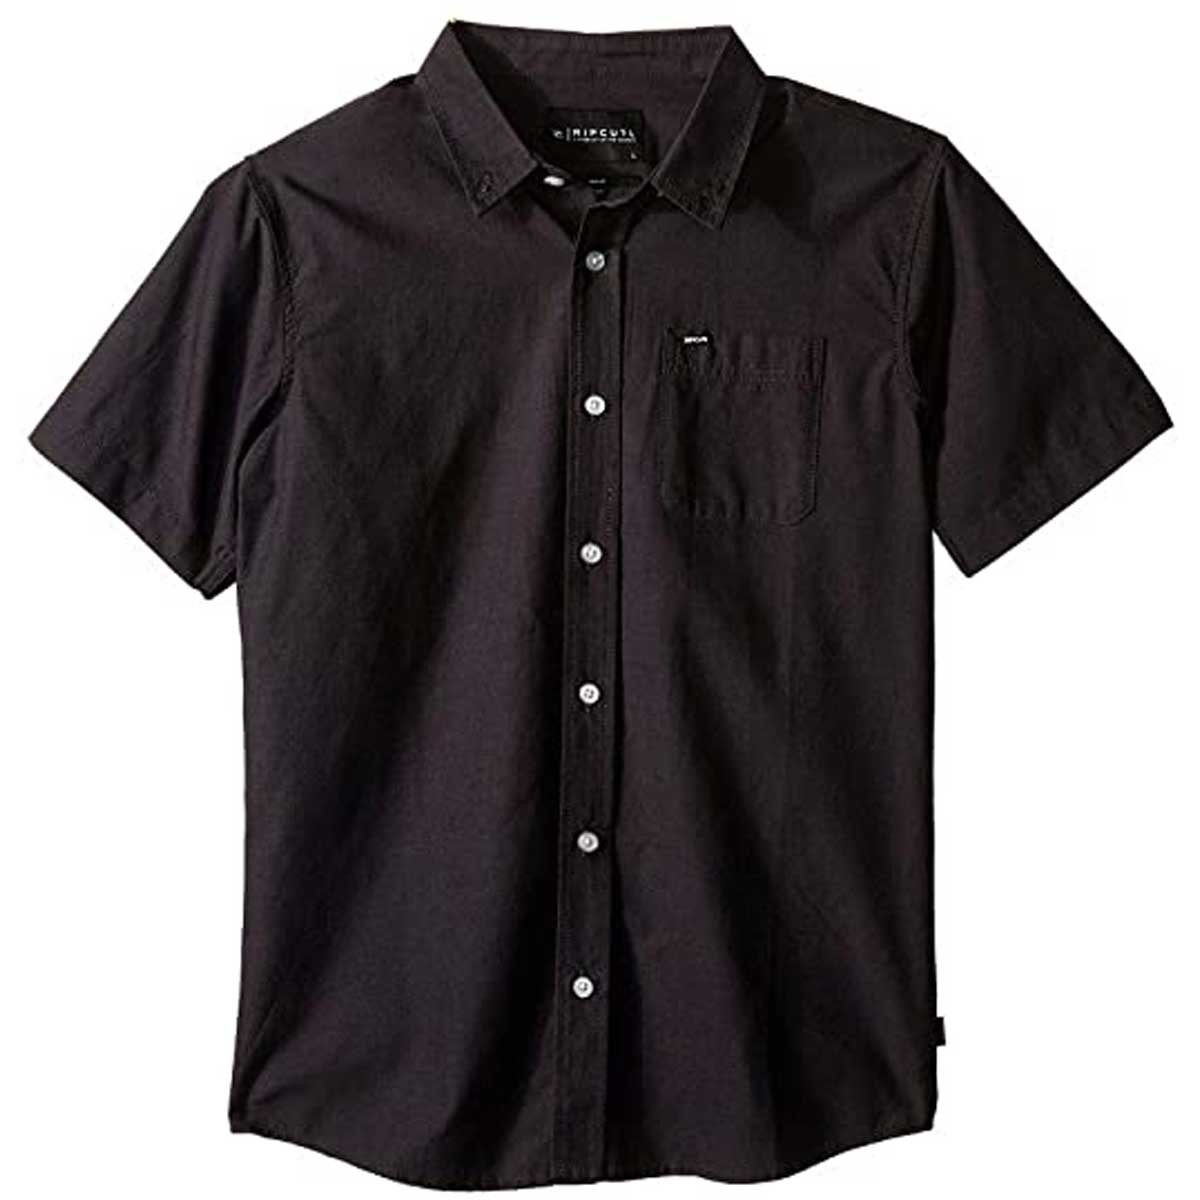 Rip Curl Ourtime Youth Boys Button Up Short-Sleeve Shirts-KSHGA7